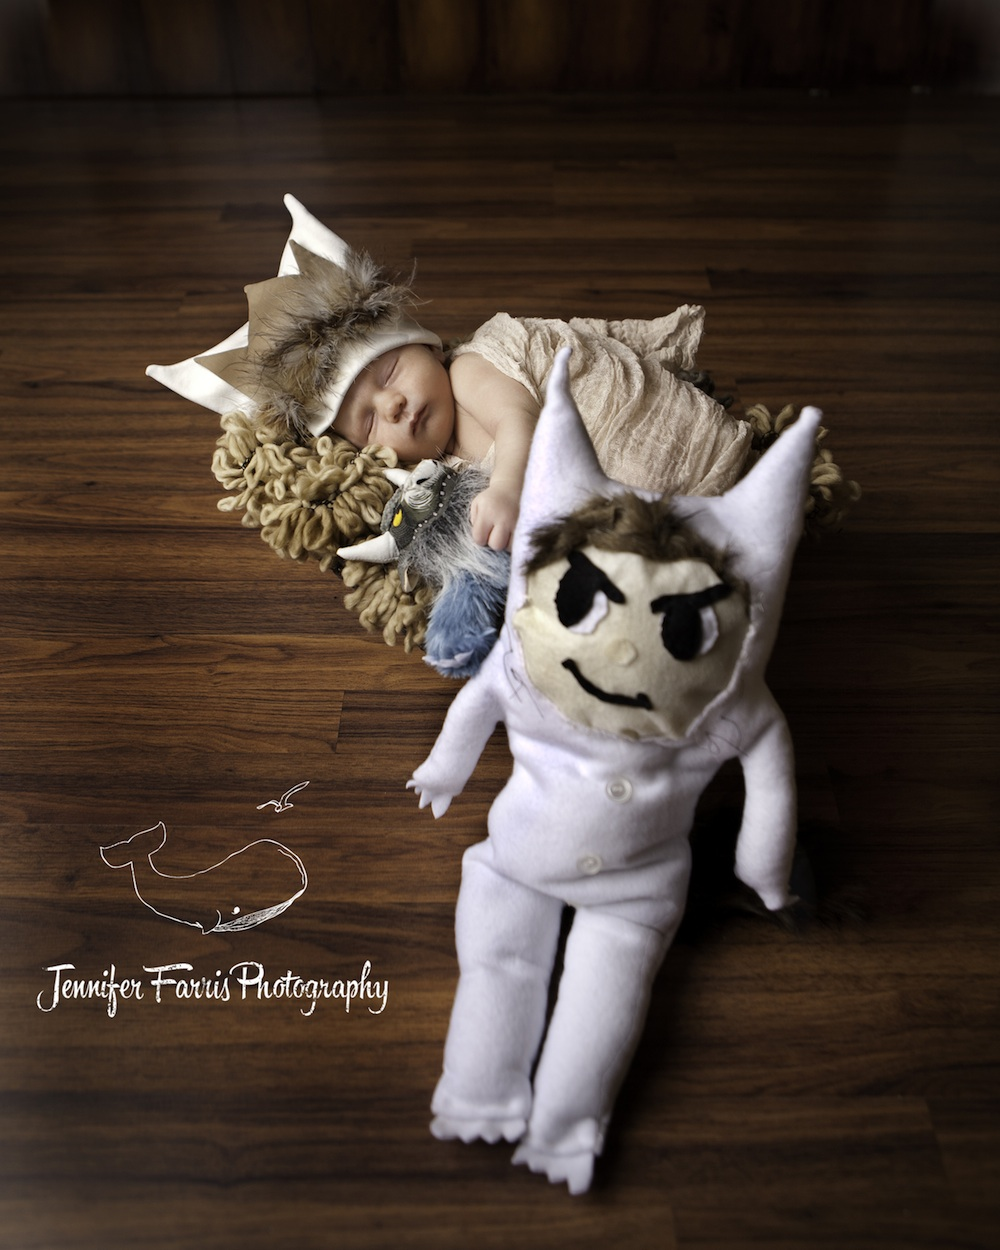 Where the Wild Things Are Themed Newborn Photo Session with Bernard and Max | Jennifer Farris Photography | as seen on GiggleHearts.com